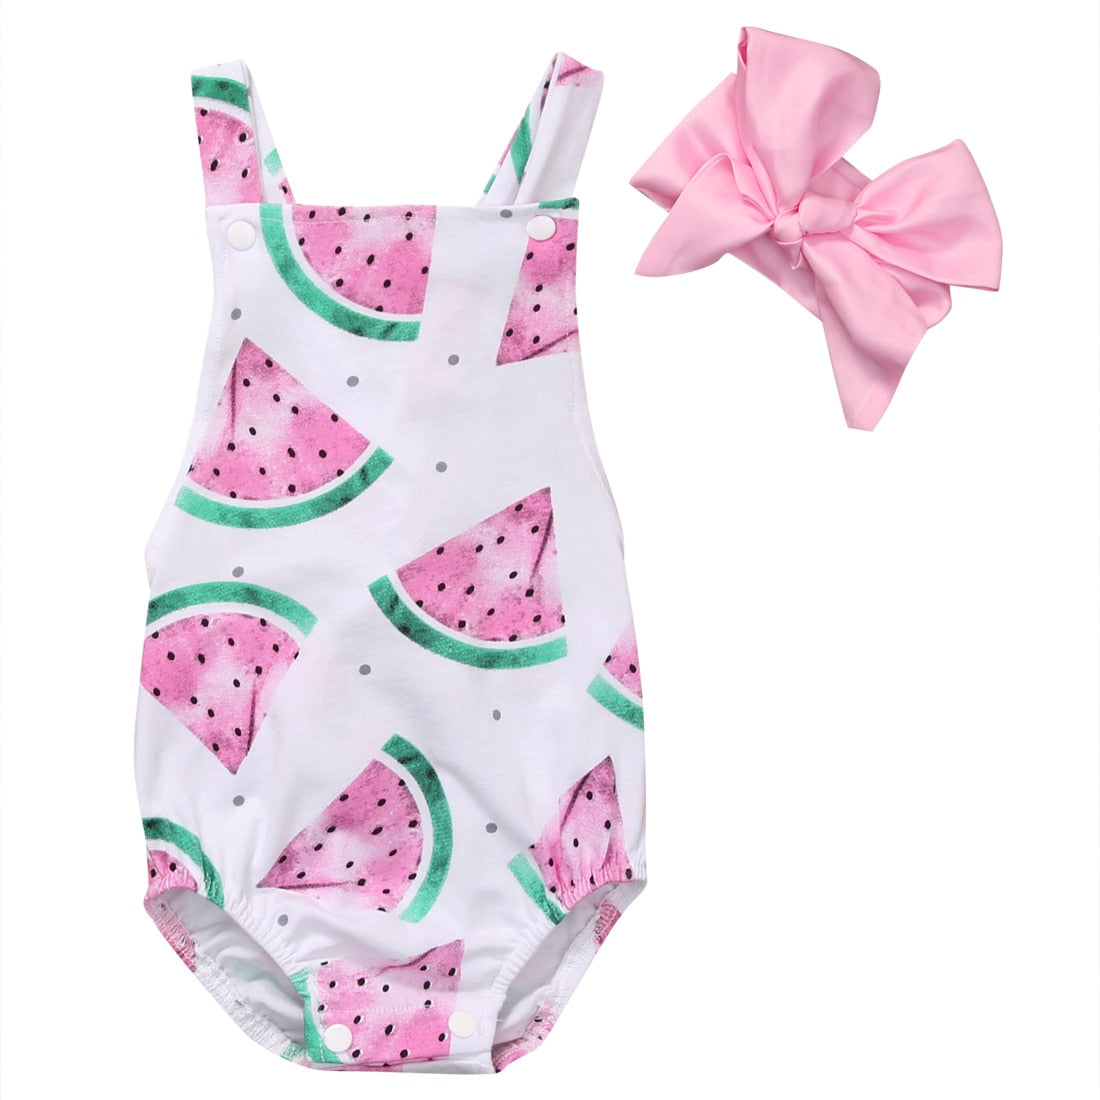 [Cute Baby Clothing & Accessories Online] - Maximus Carter